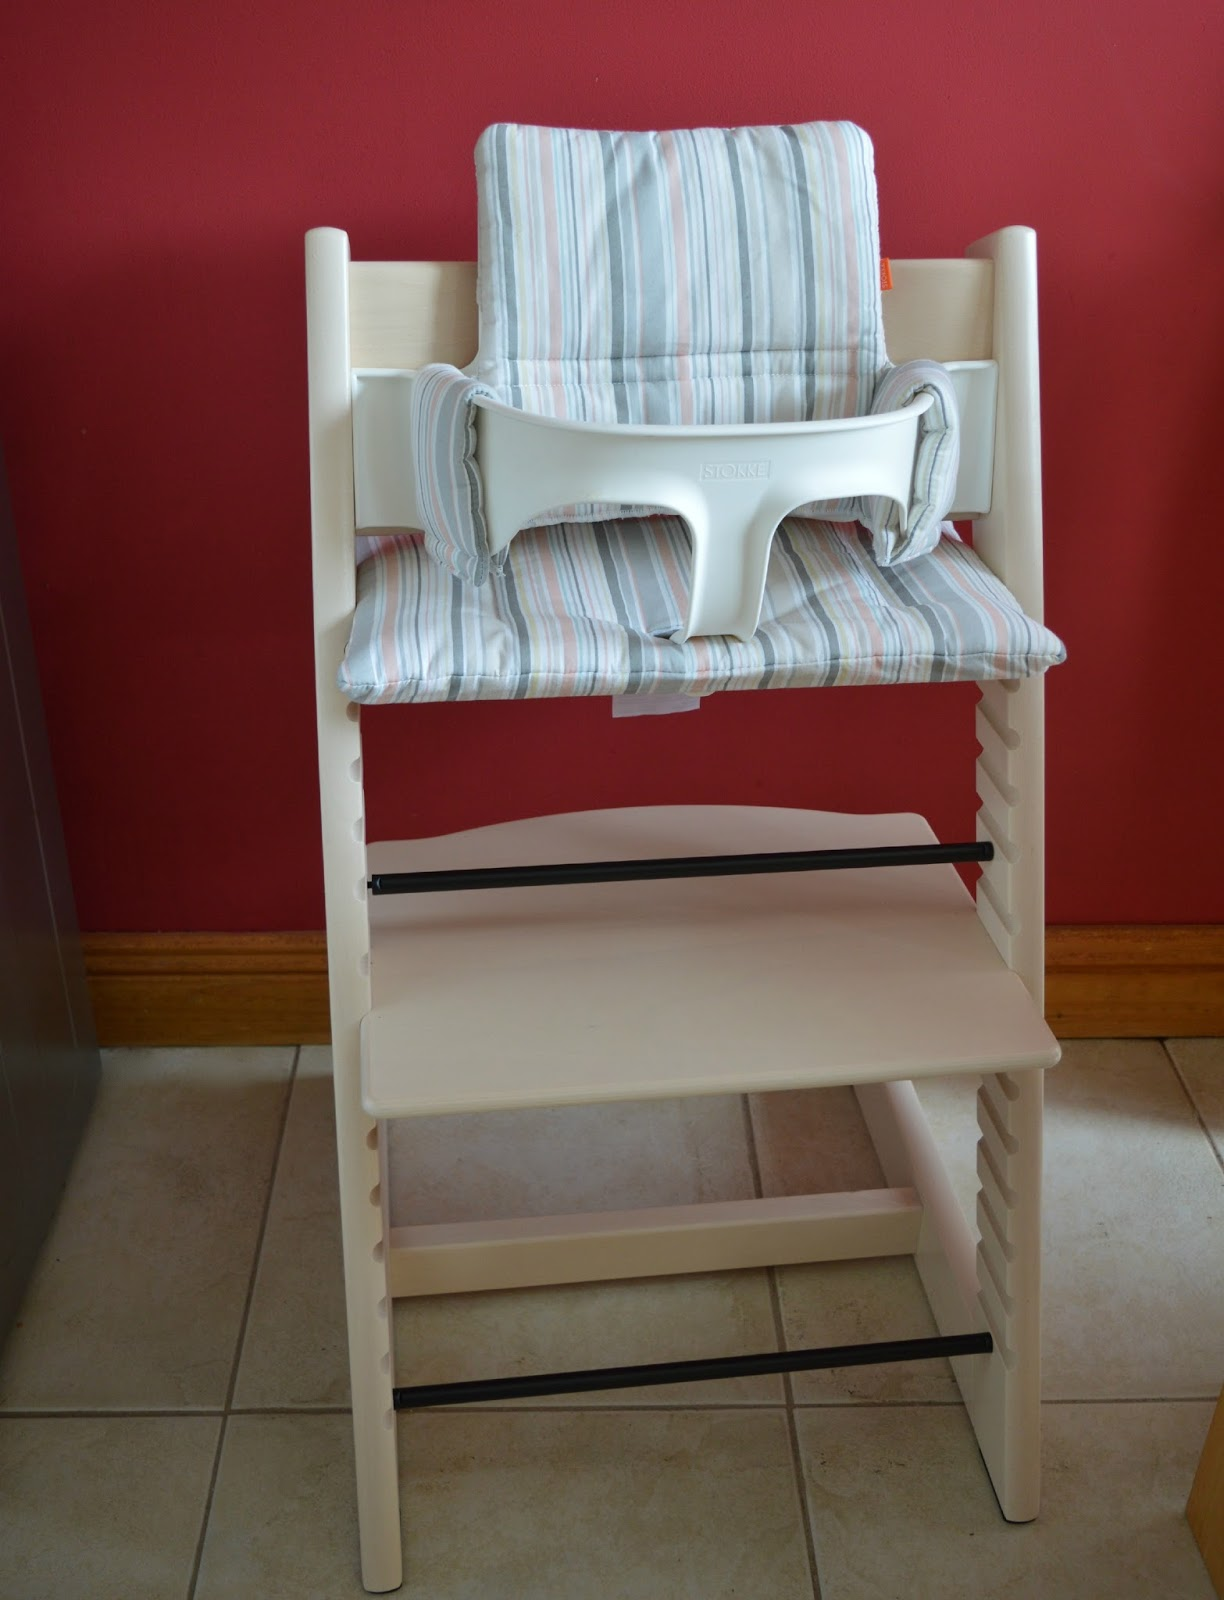 stokke tripp trapp chair review dolly dowsie. Black Bedroom Furniture Sets. Home Design Ideas